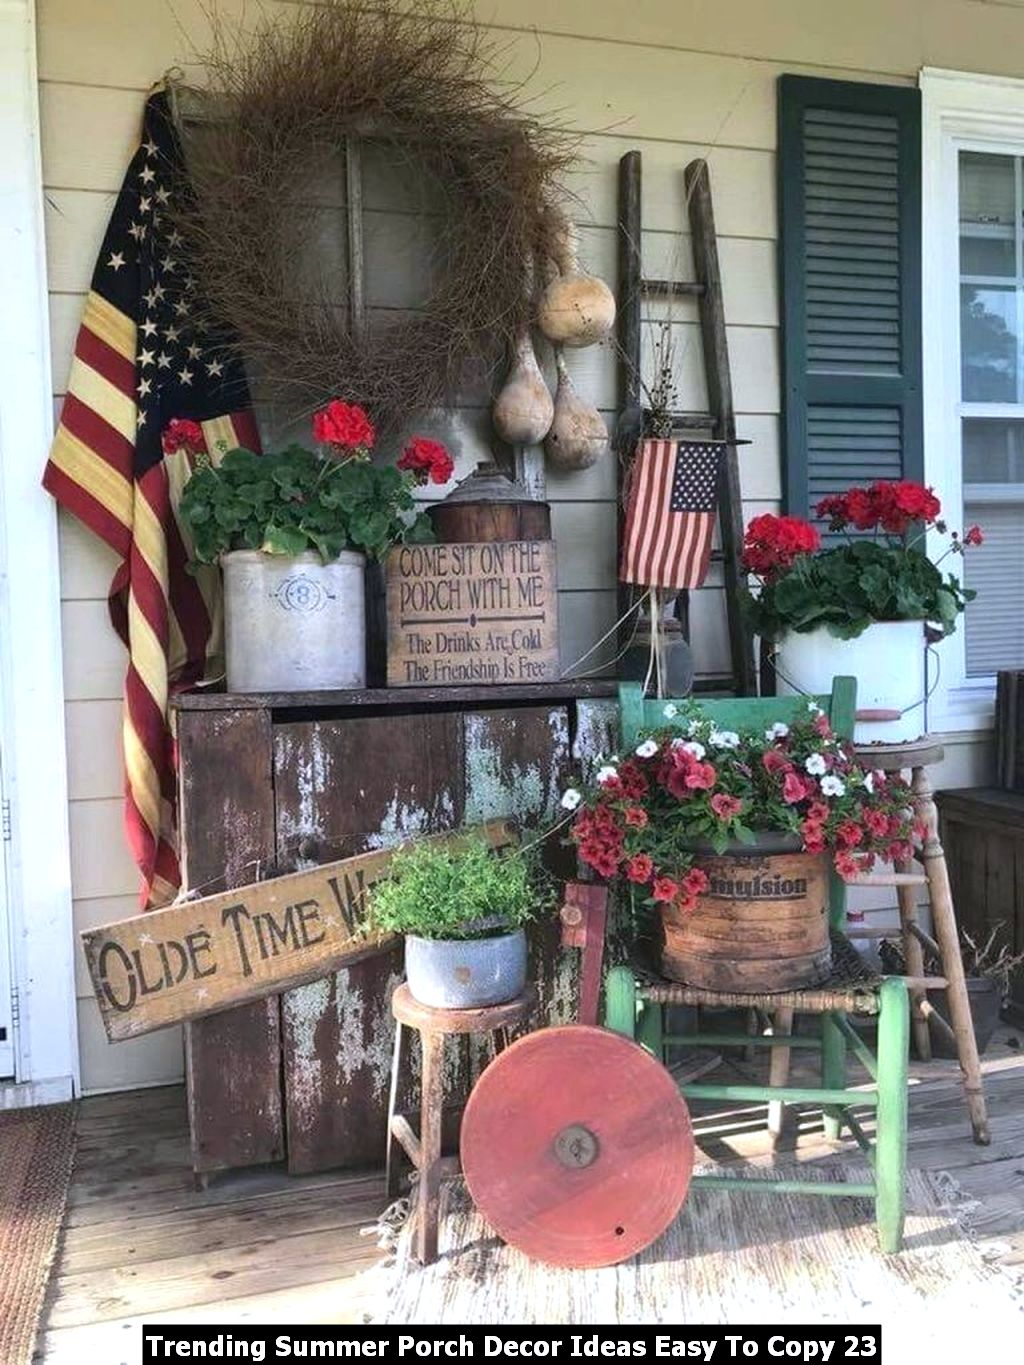 Trending Summer Porch Decor Ideas Easy To Copy 23